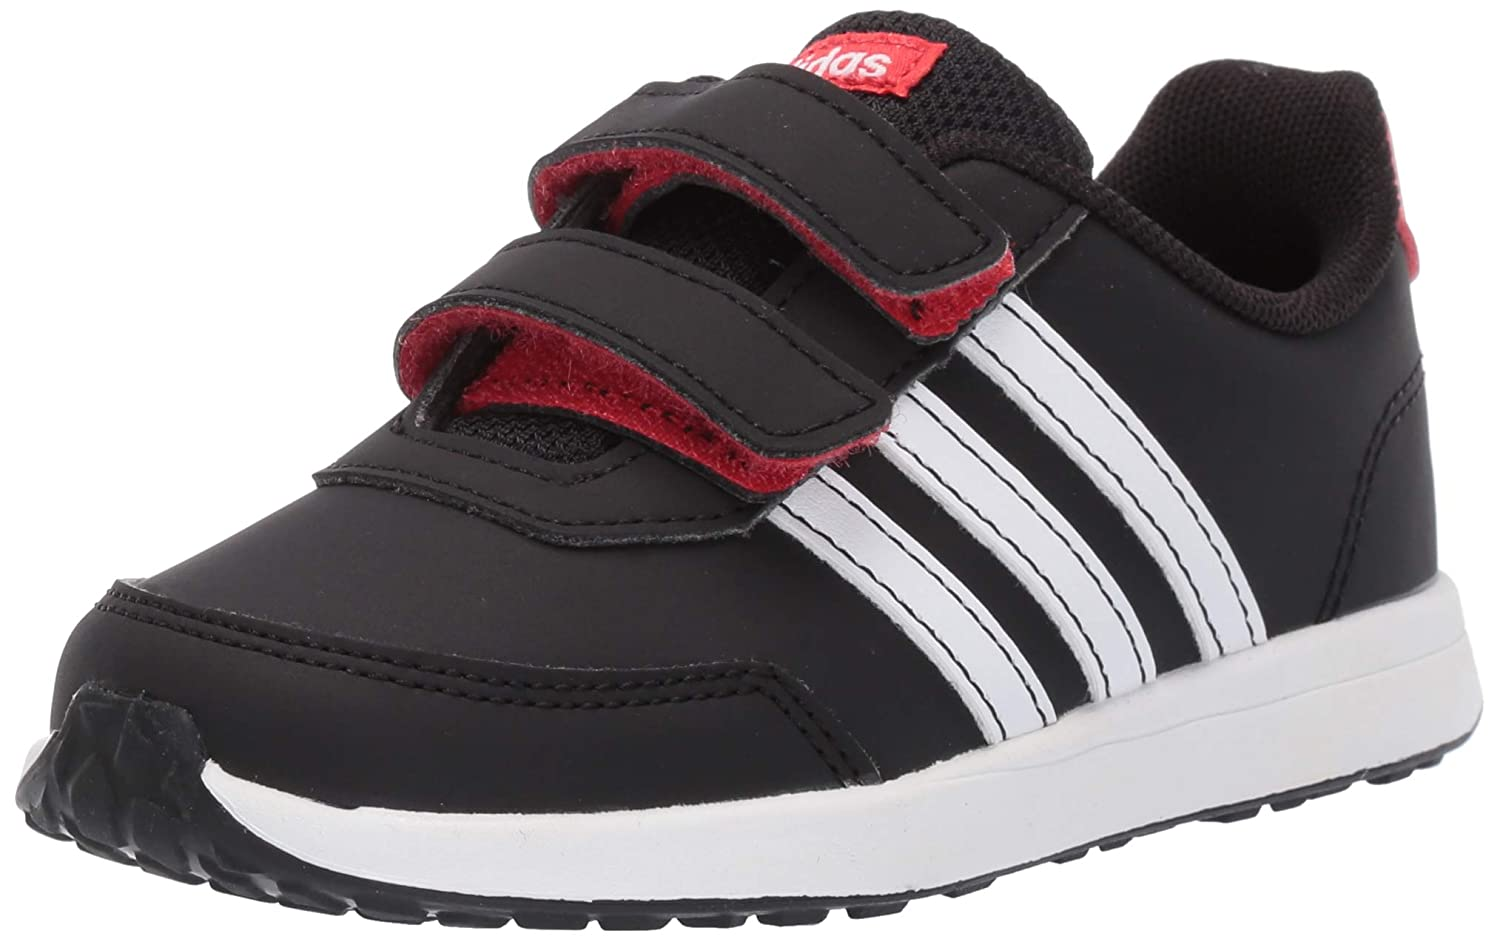 adidas VS Switch 2 Toddler Boys' Sneakers